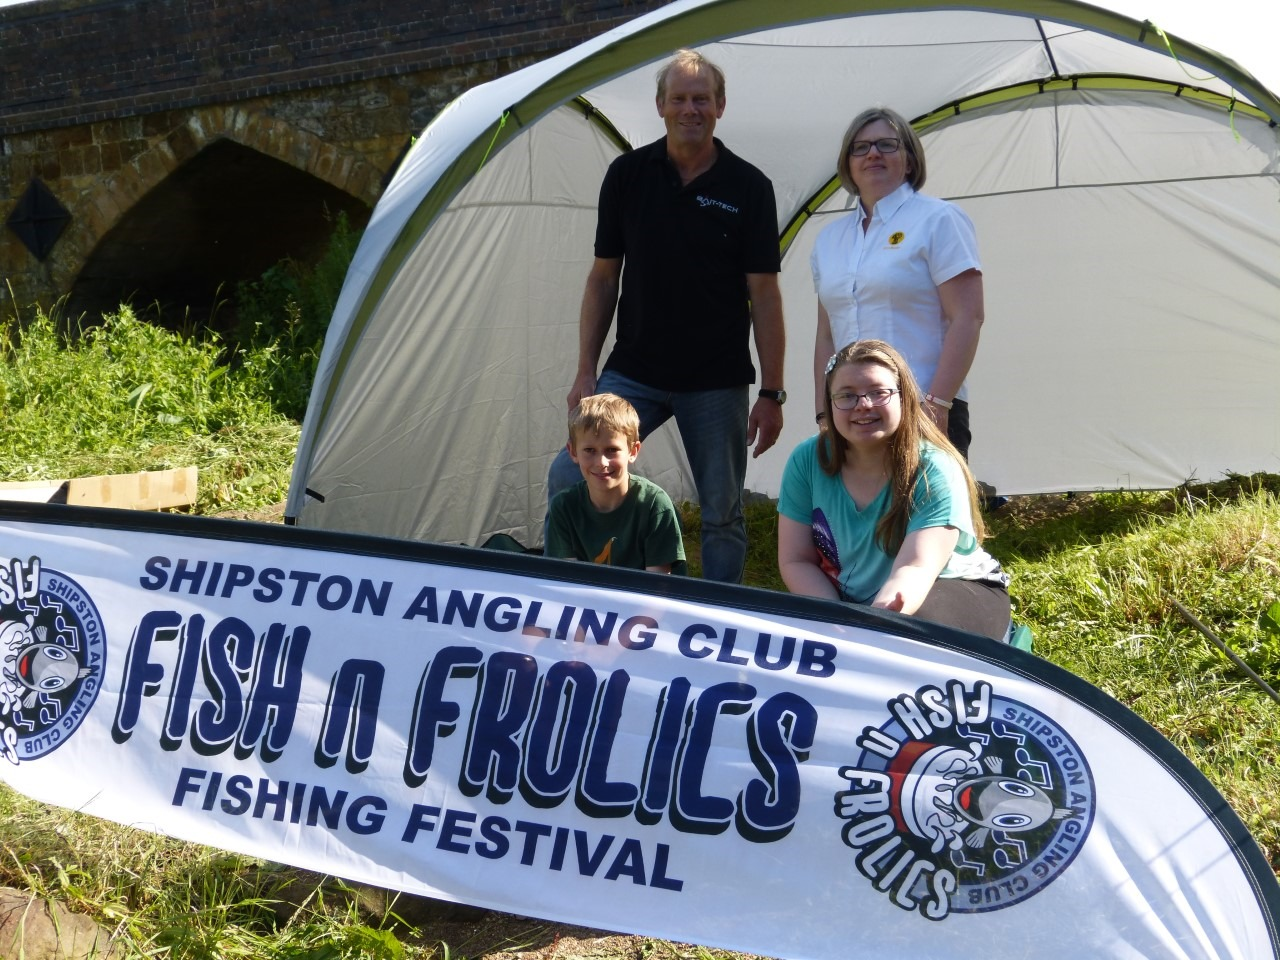 Shipston's the spot for all things fishy